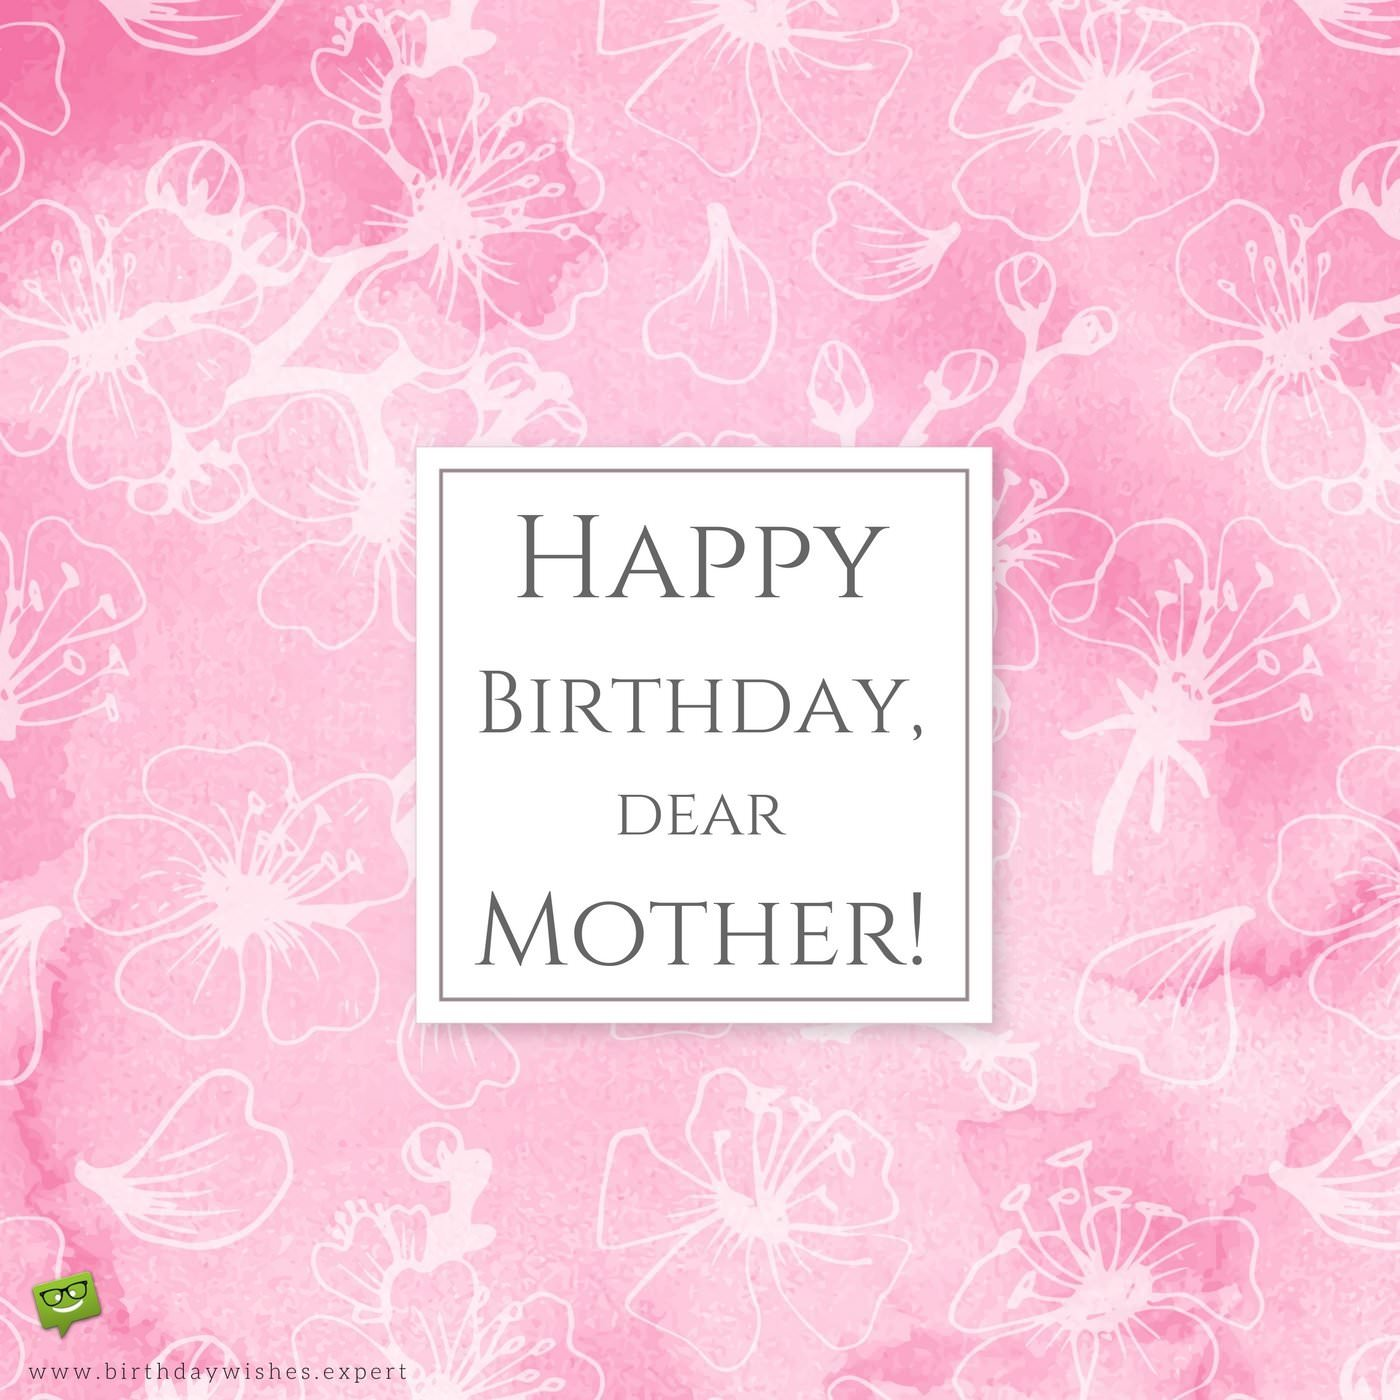 Best Mom in the World – Birthday Greetings to Mother